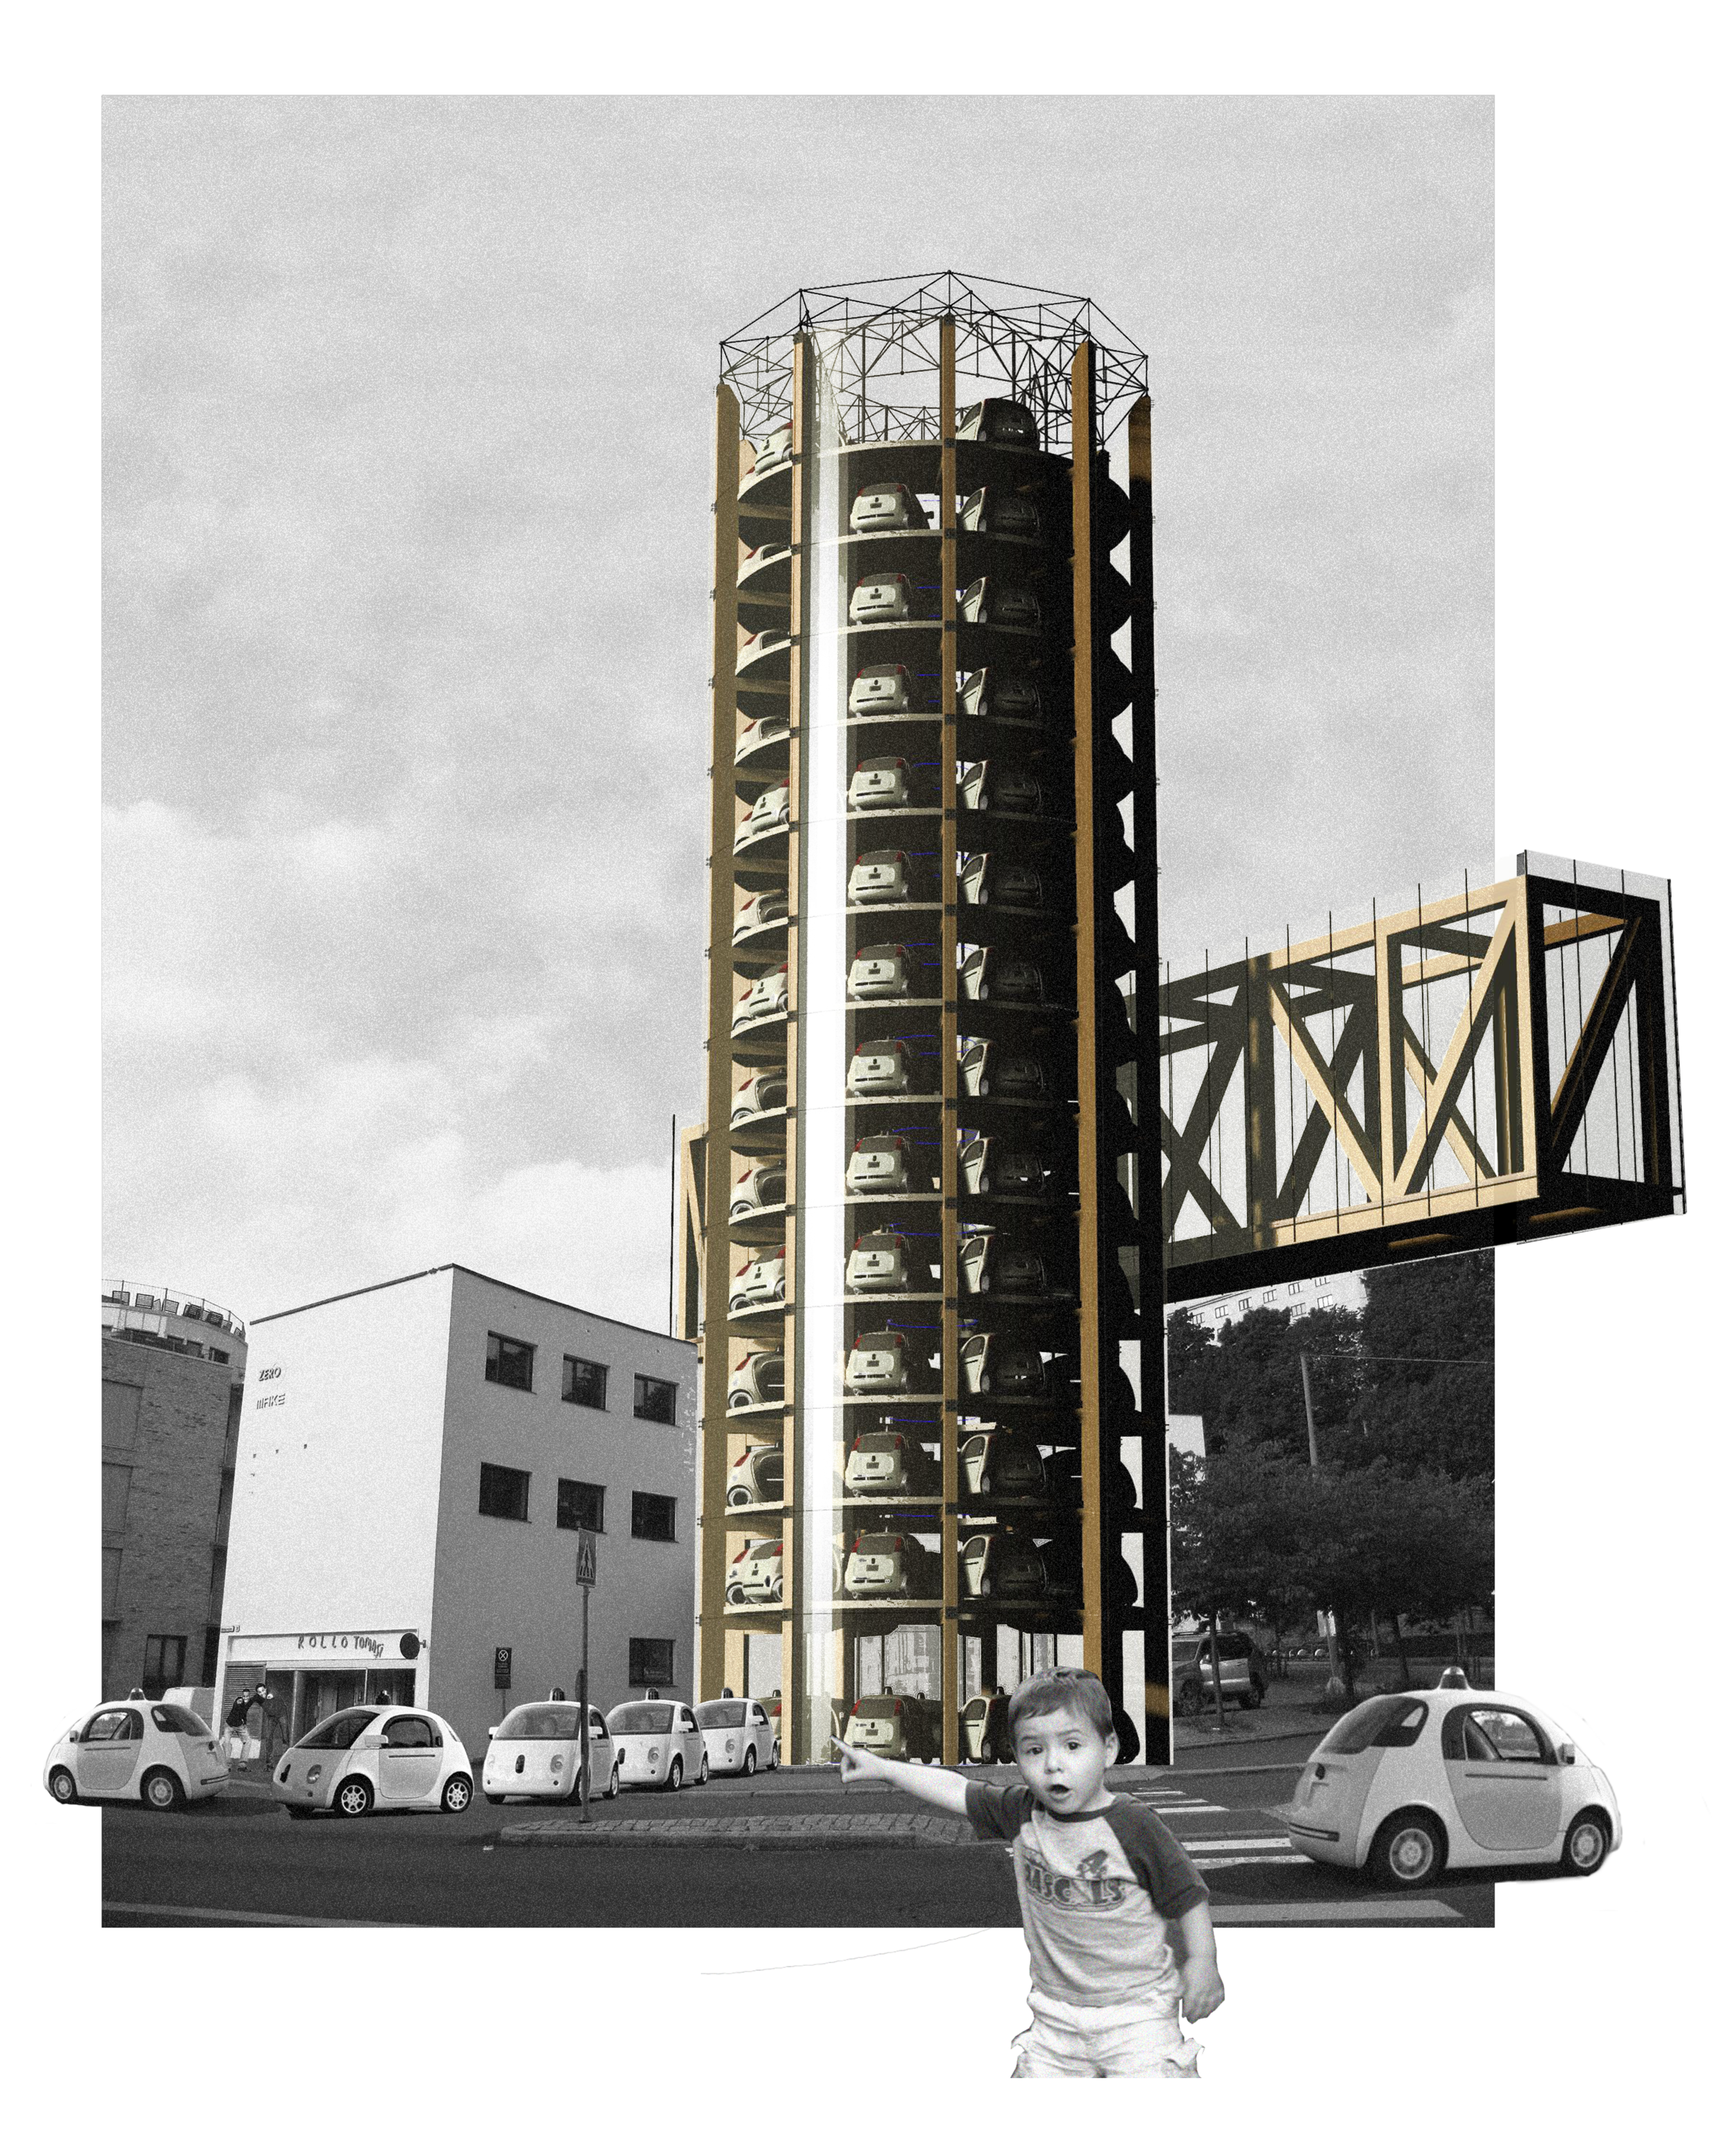 Jan Godzimirski_Parking and charging tower for self-driving cars.png